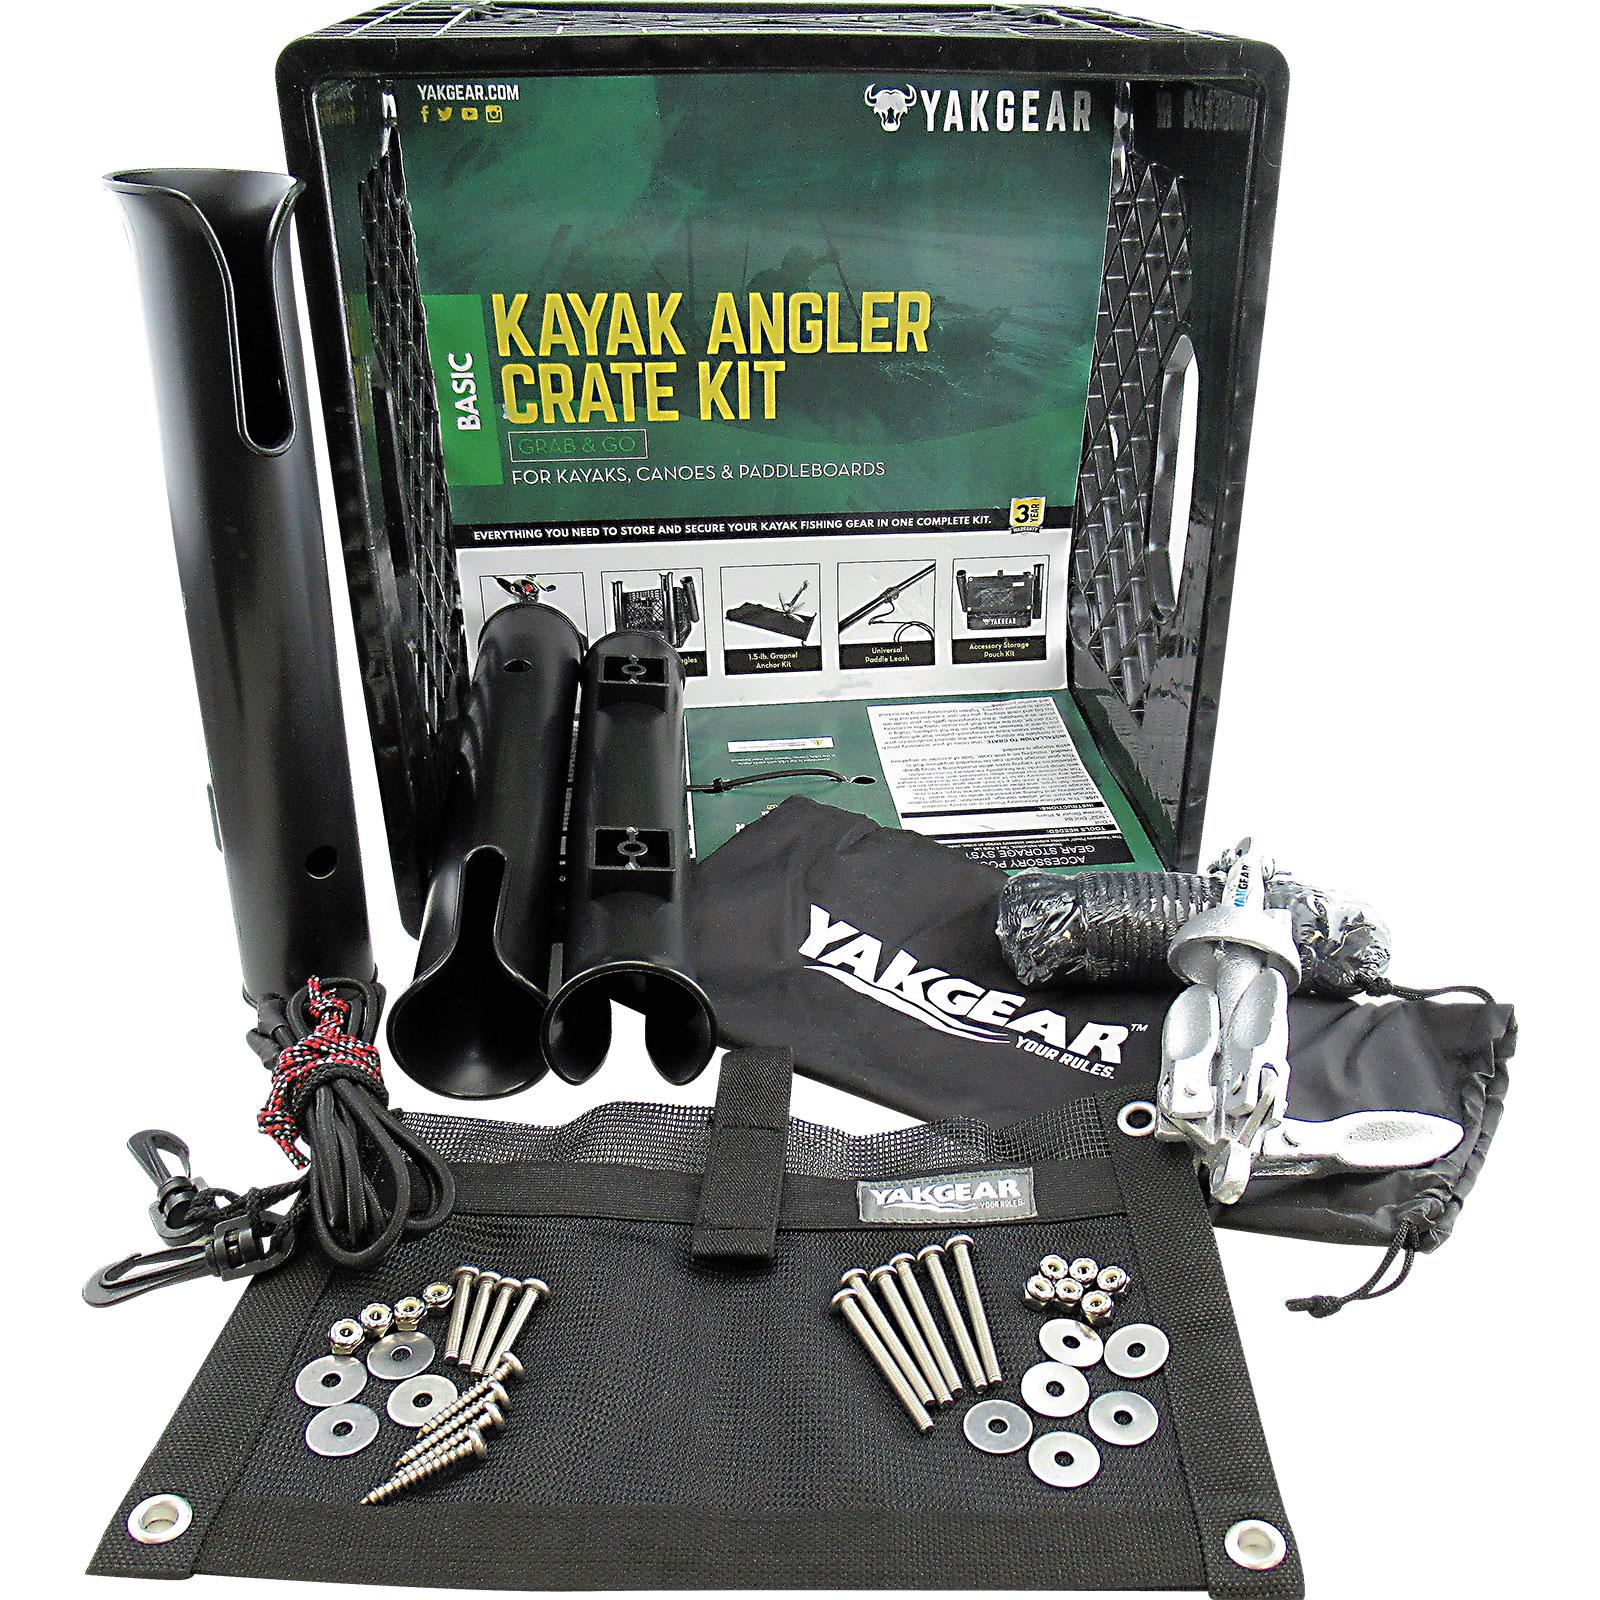 Basic kit and components